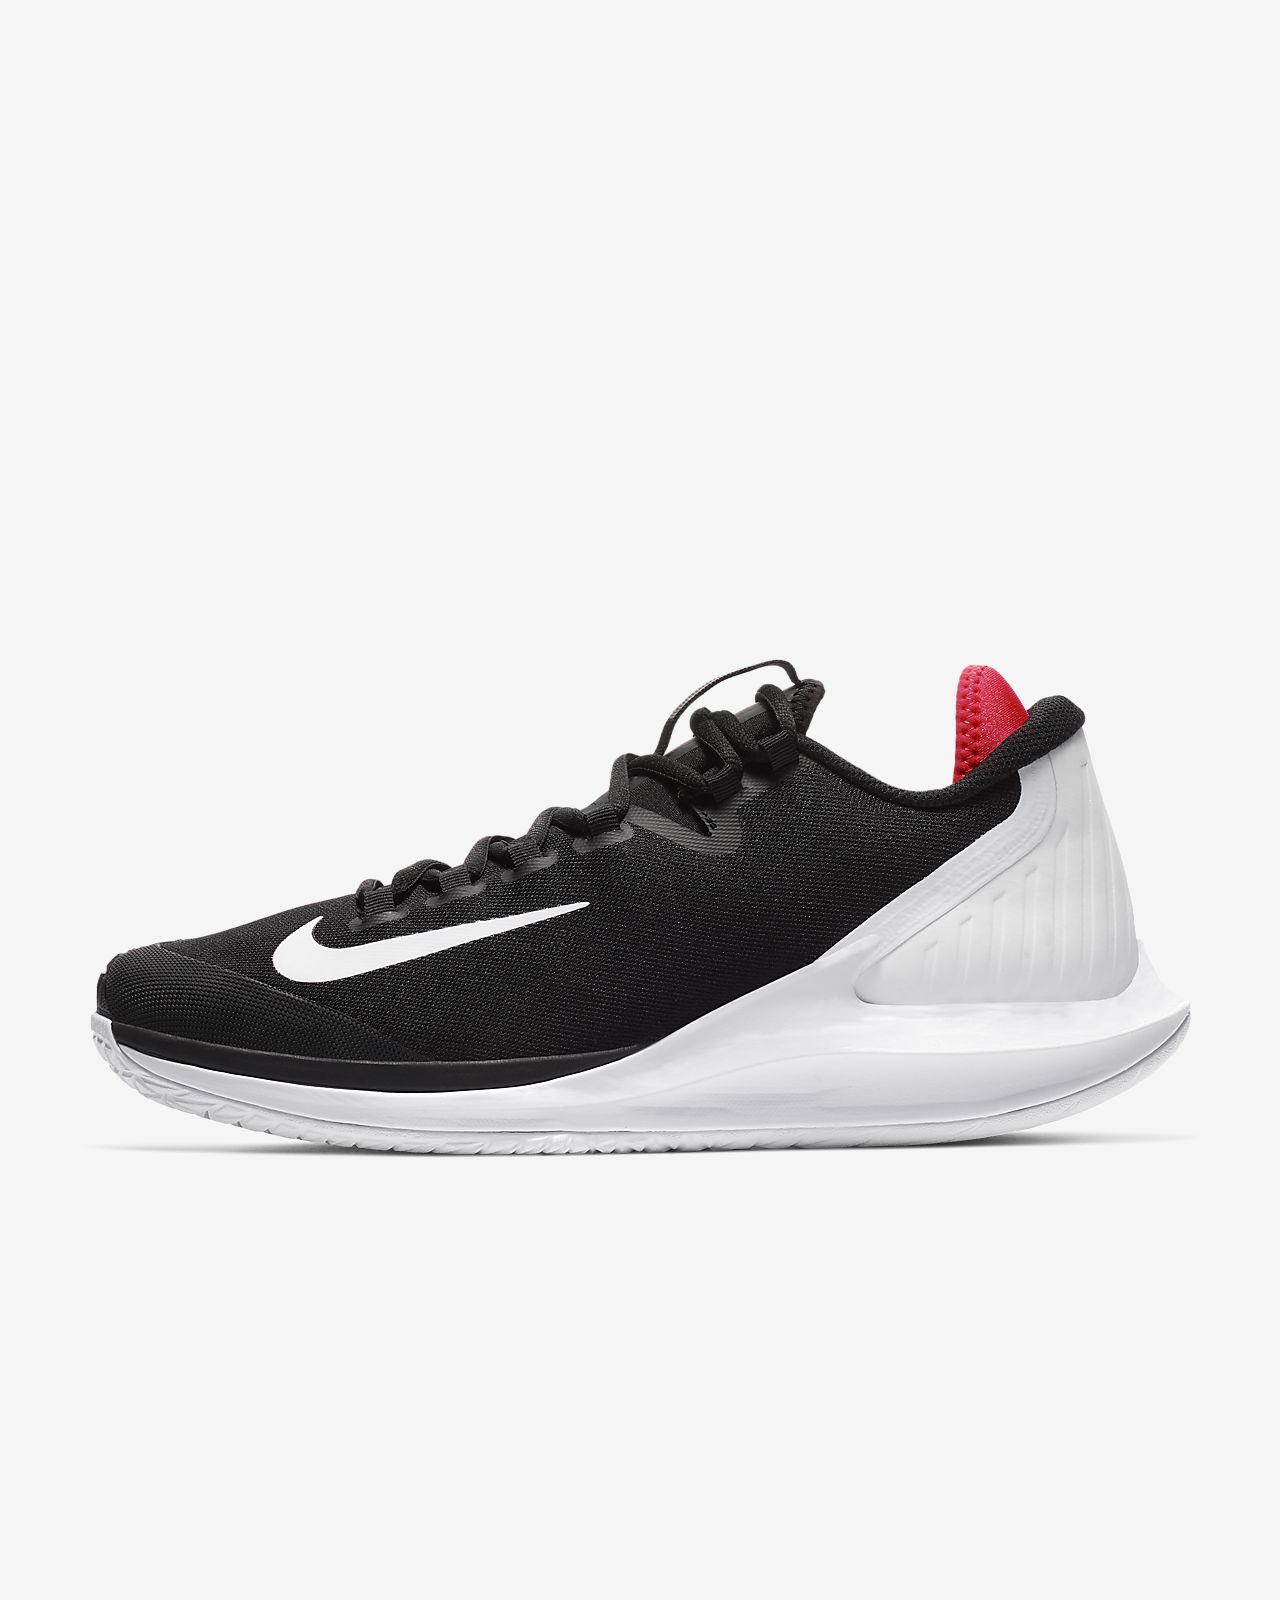 low priced 56546 a57a3 ... Chaussure de tennis NikeCourt Air Zoom Zero pour Homme